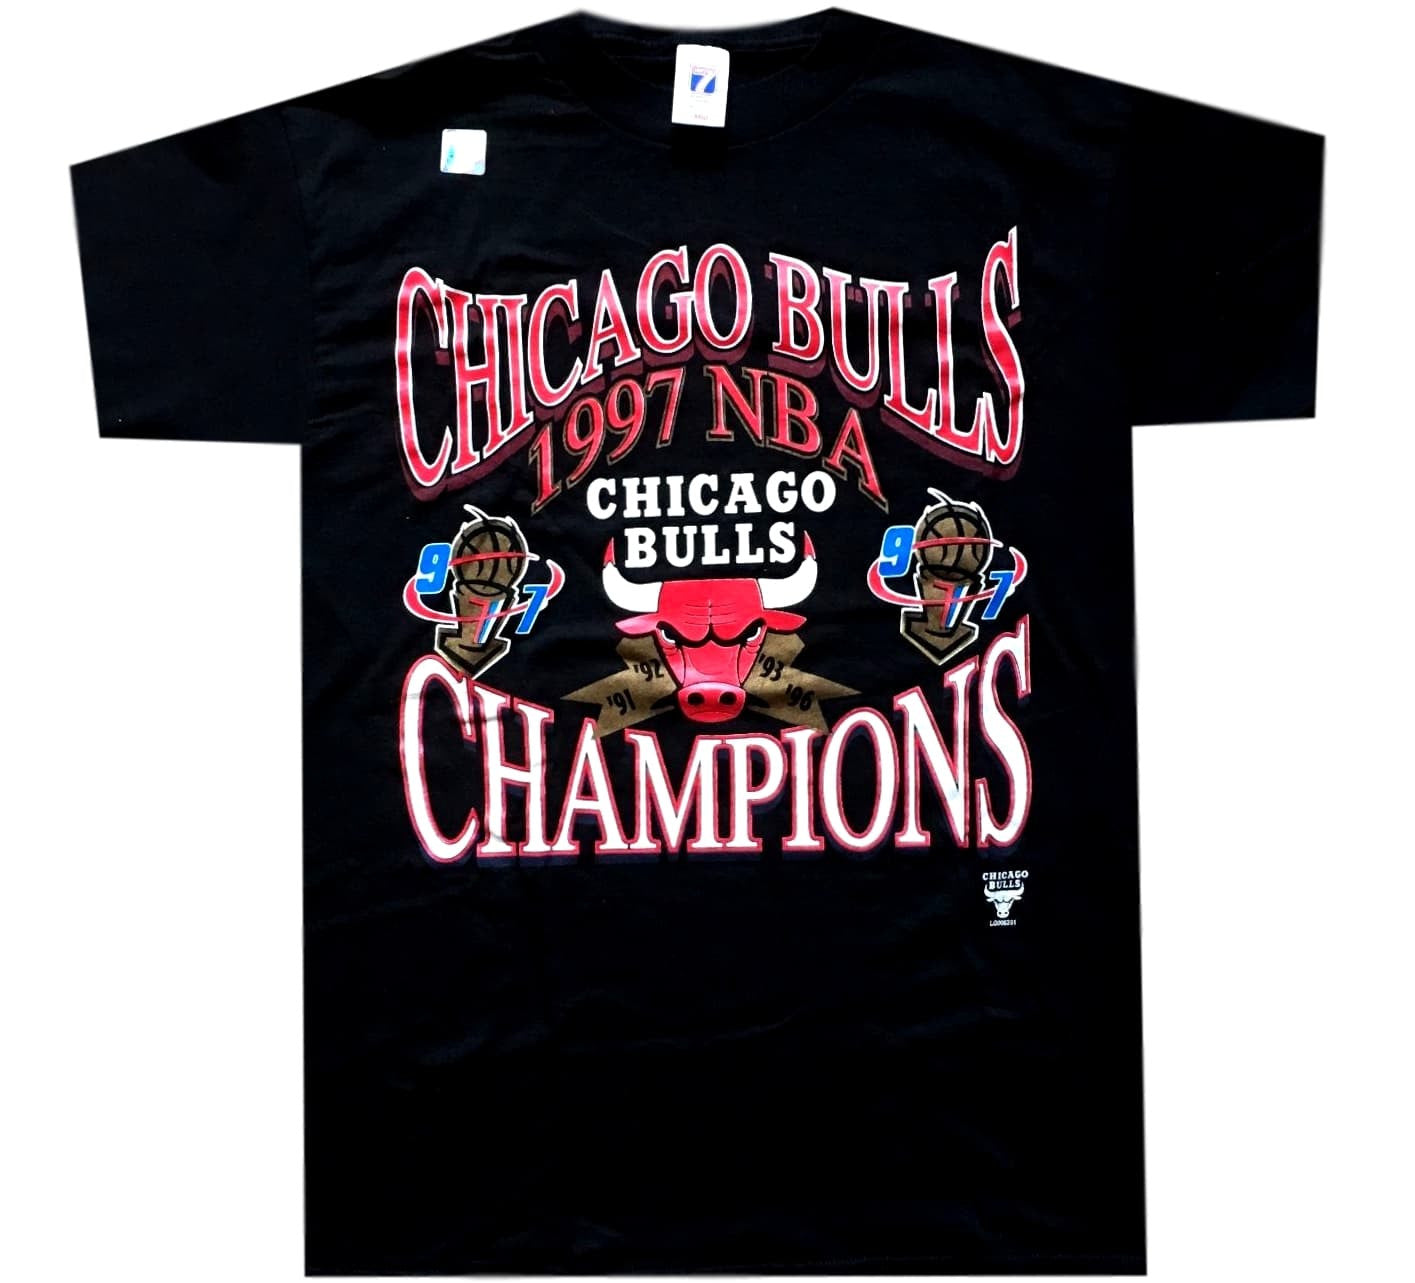 Bulls 1997 NBA Champs Shirt